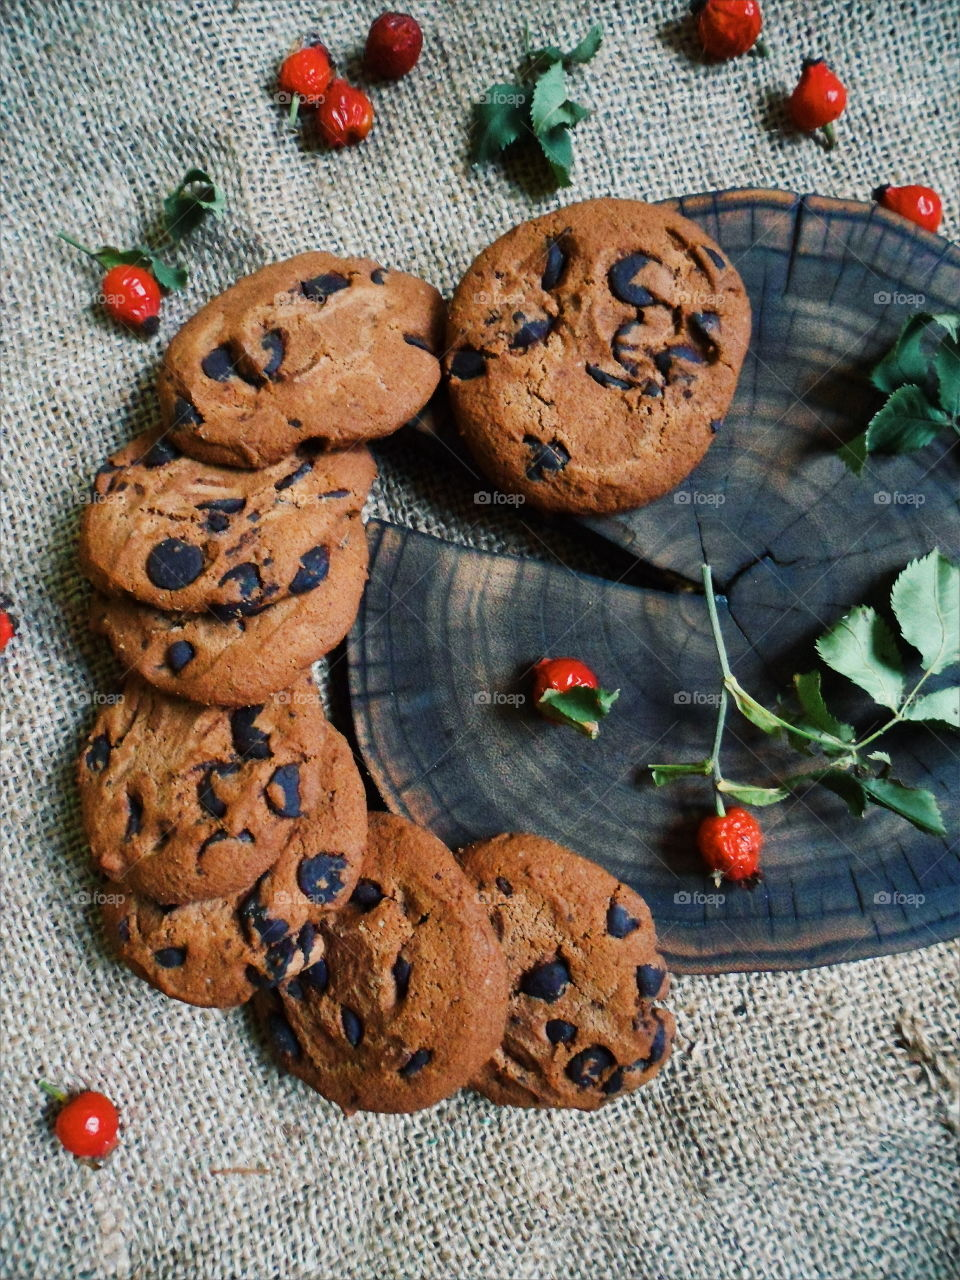 oatmeal cookies with chunks of chocolate and rose hips, dessert